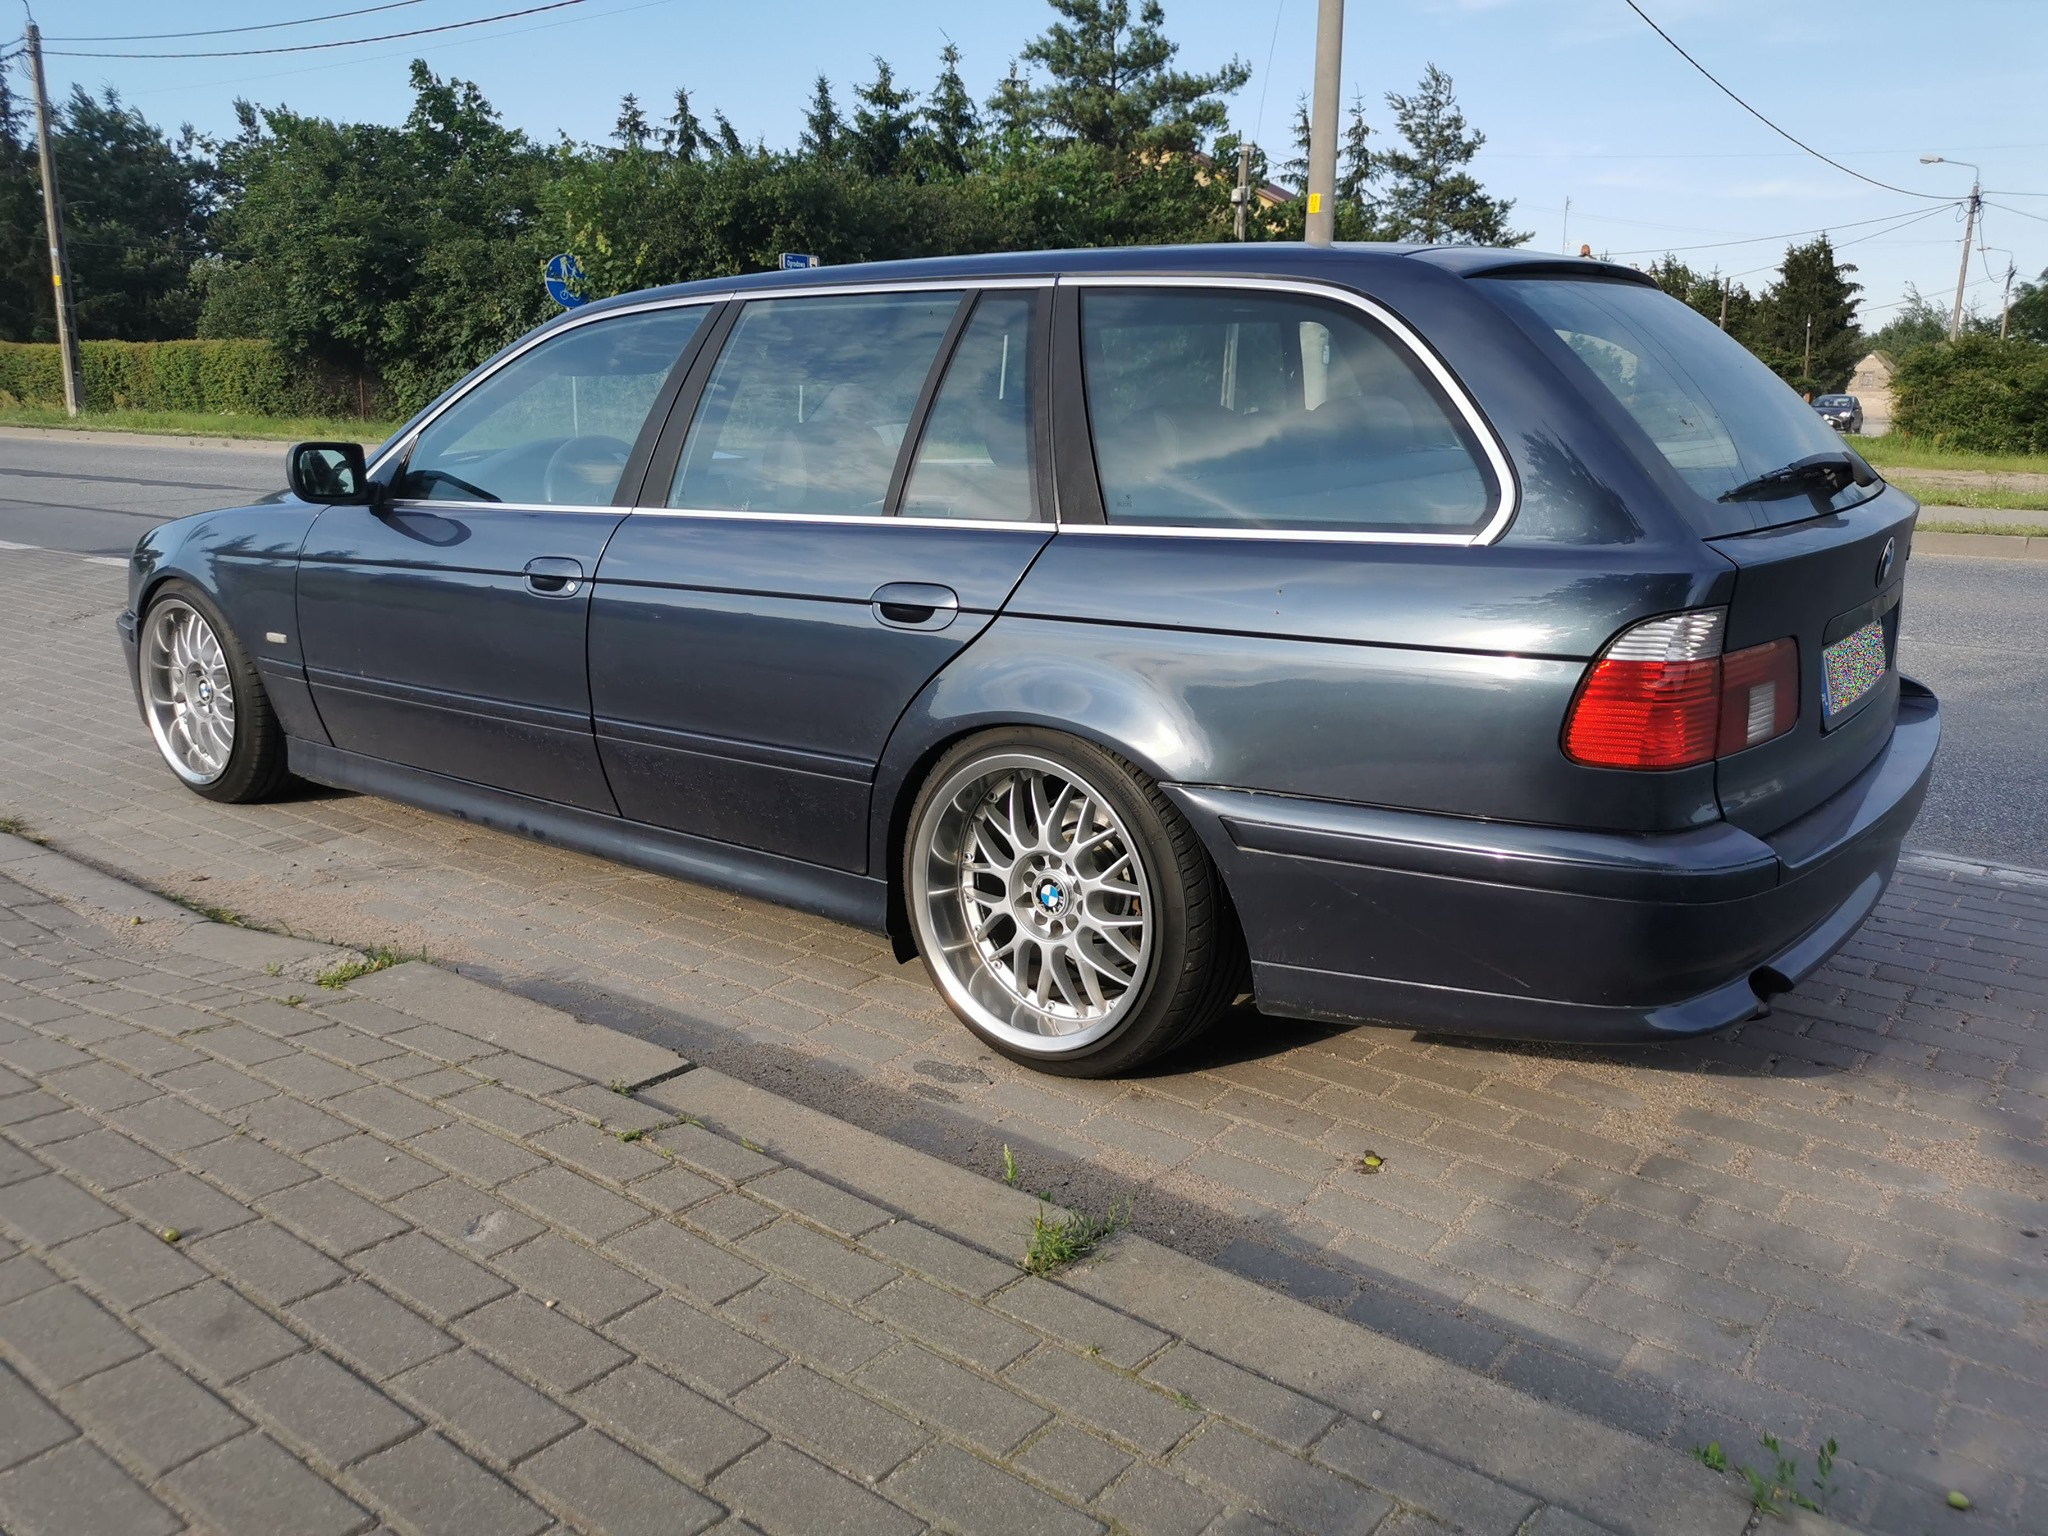 BMW E39 530D 193KM >> 243KM 541Nm